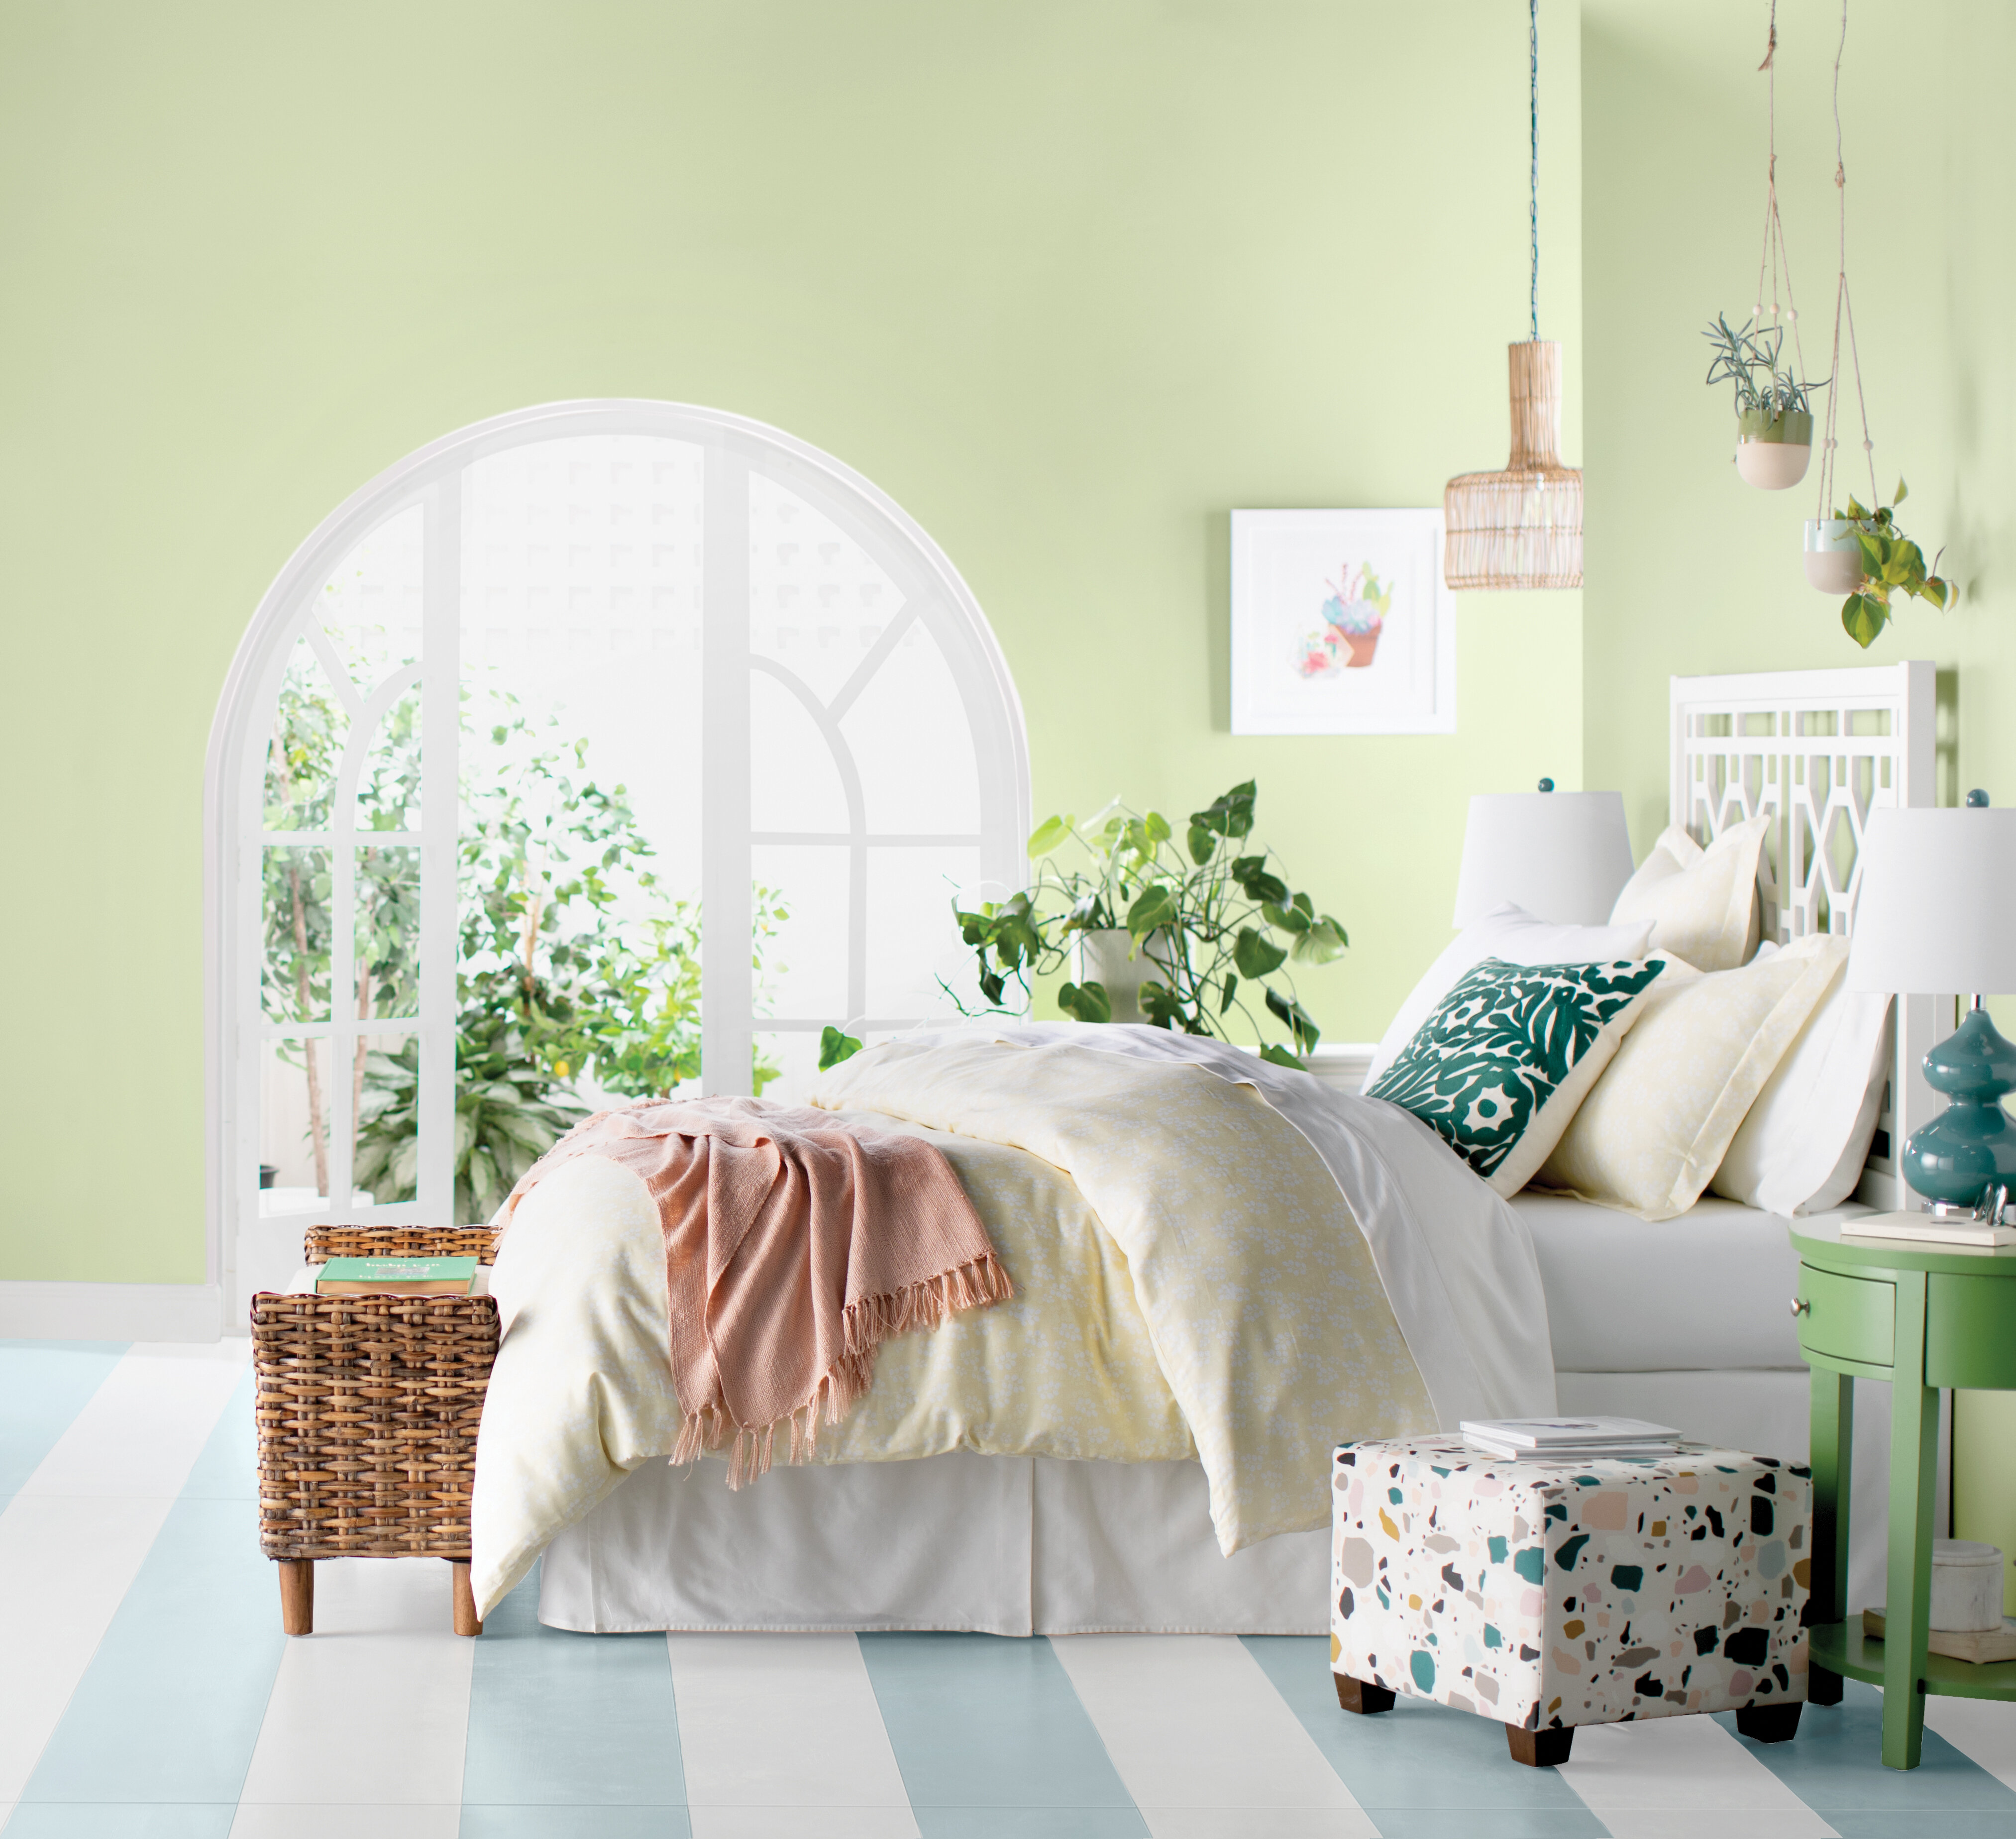 Discover Your Style With These 9 Bedroom Decor Ideas Wayfair